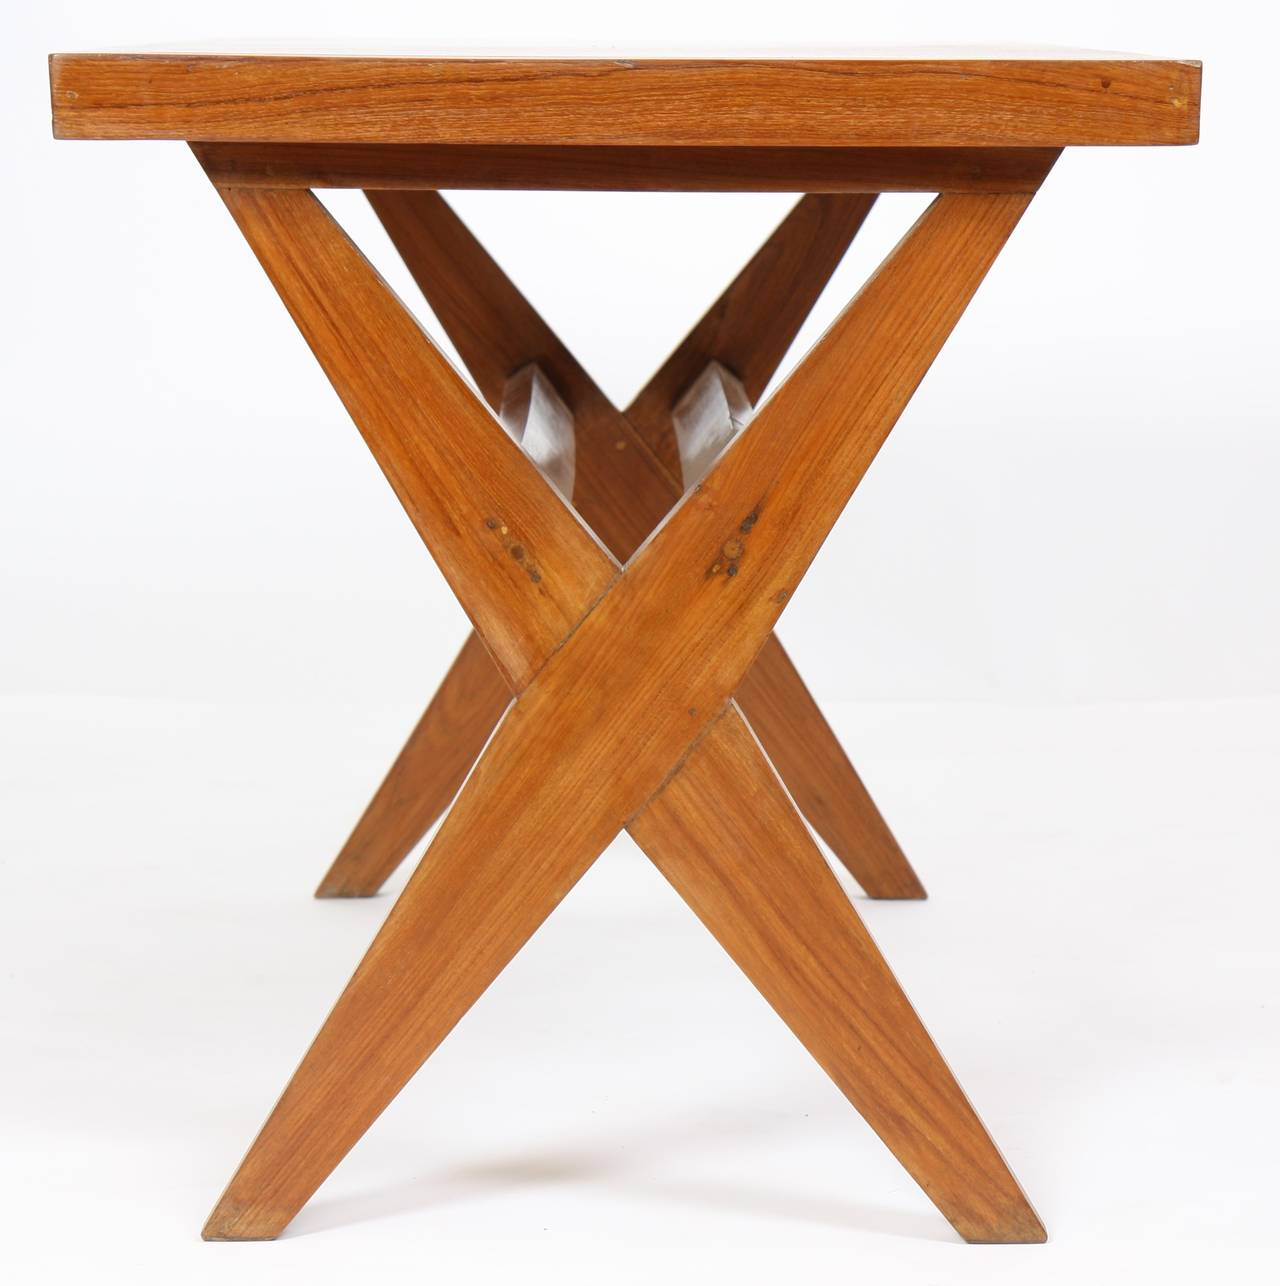 Pierre Jeanneret (1896-1967) High dining table called :